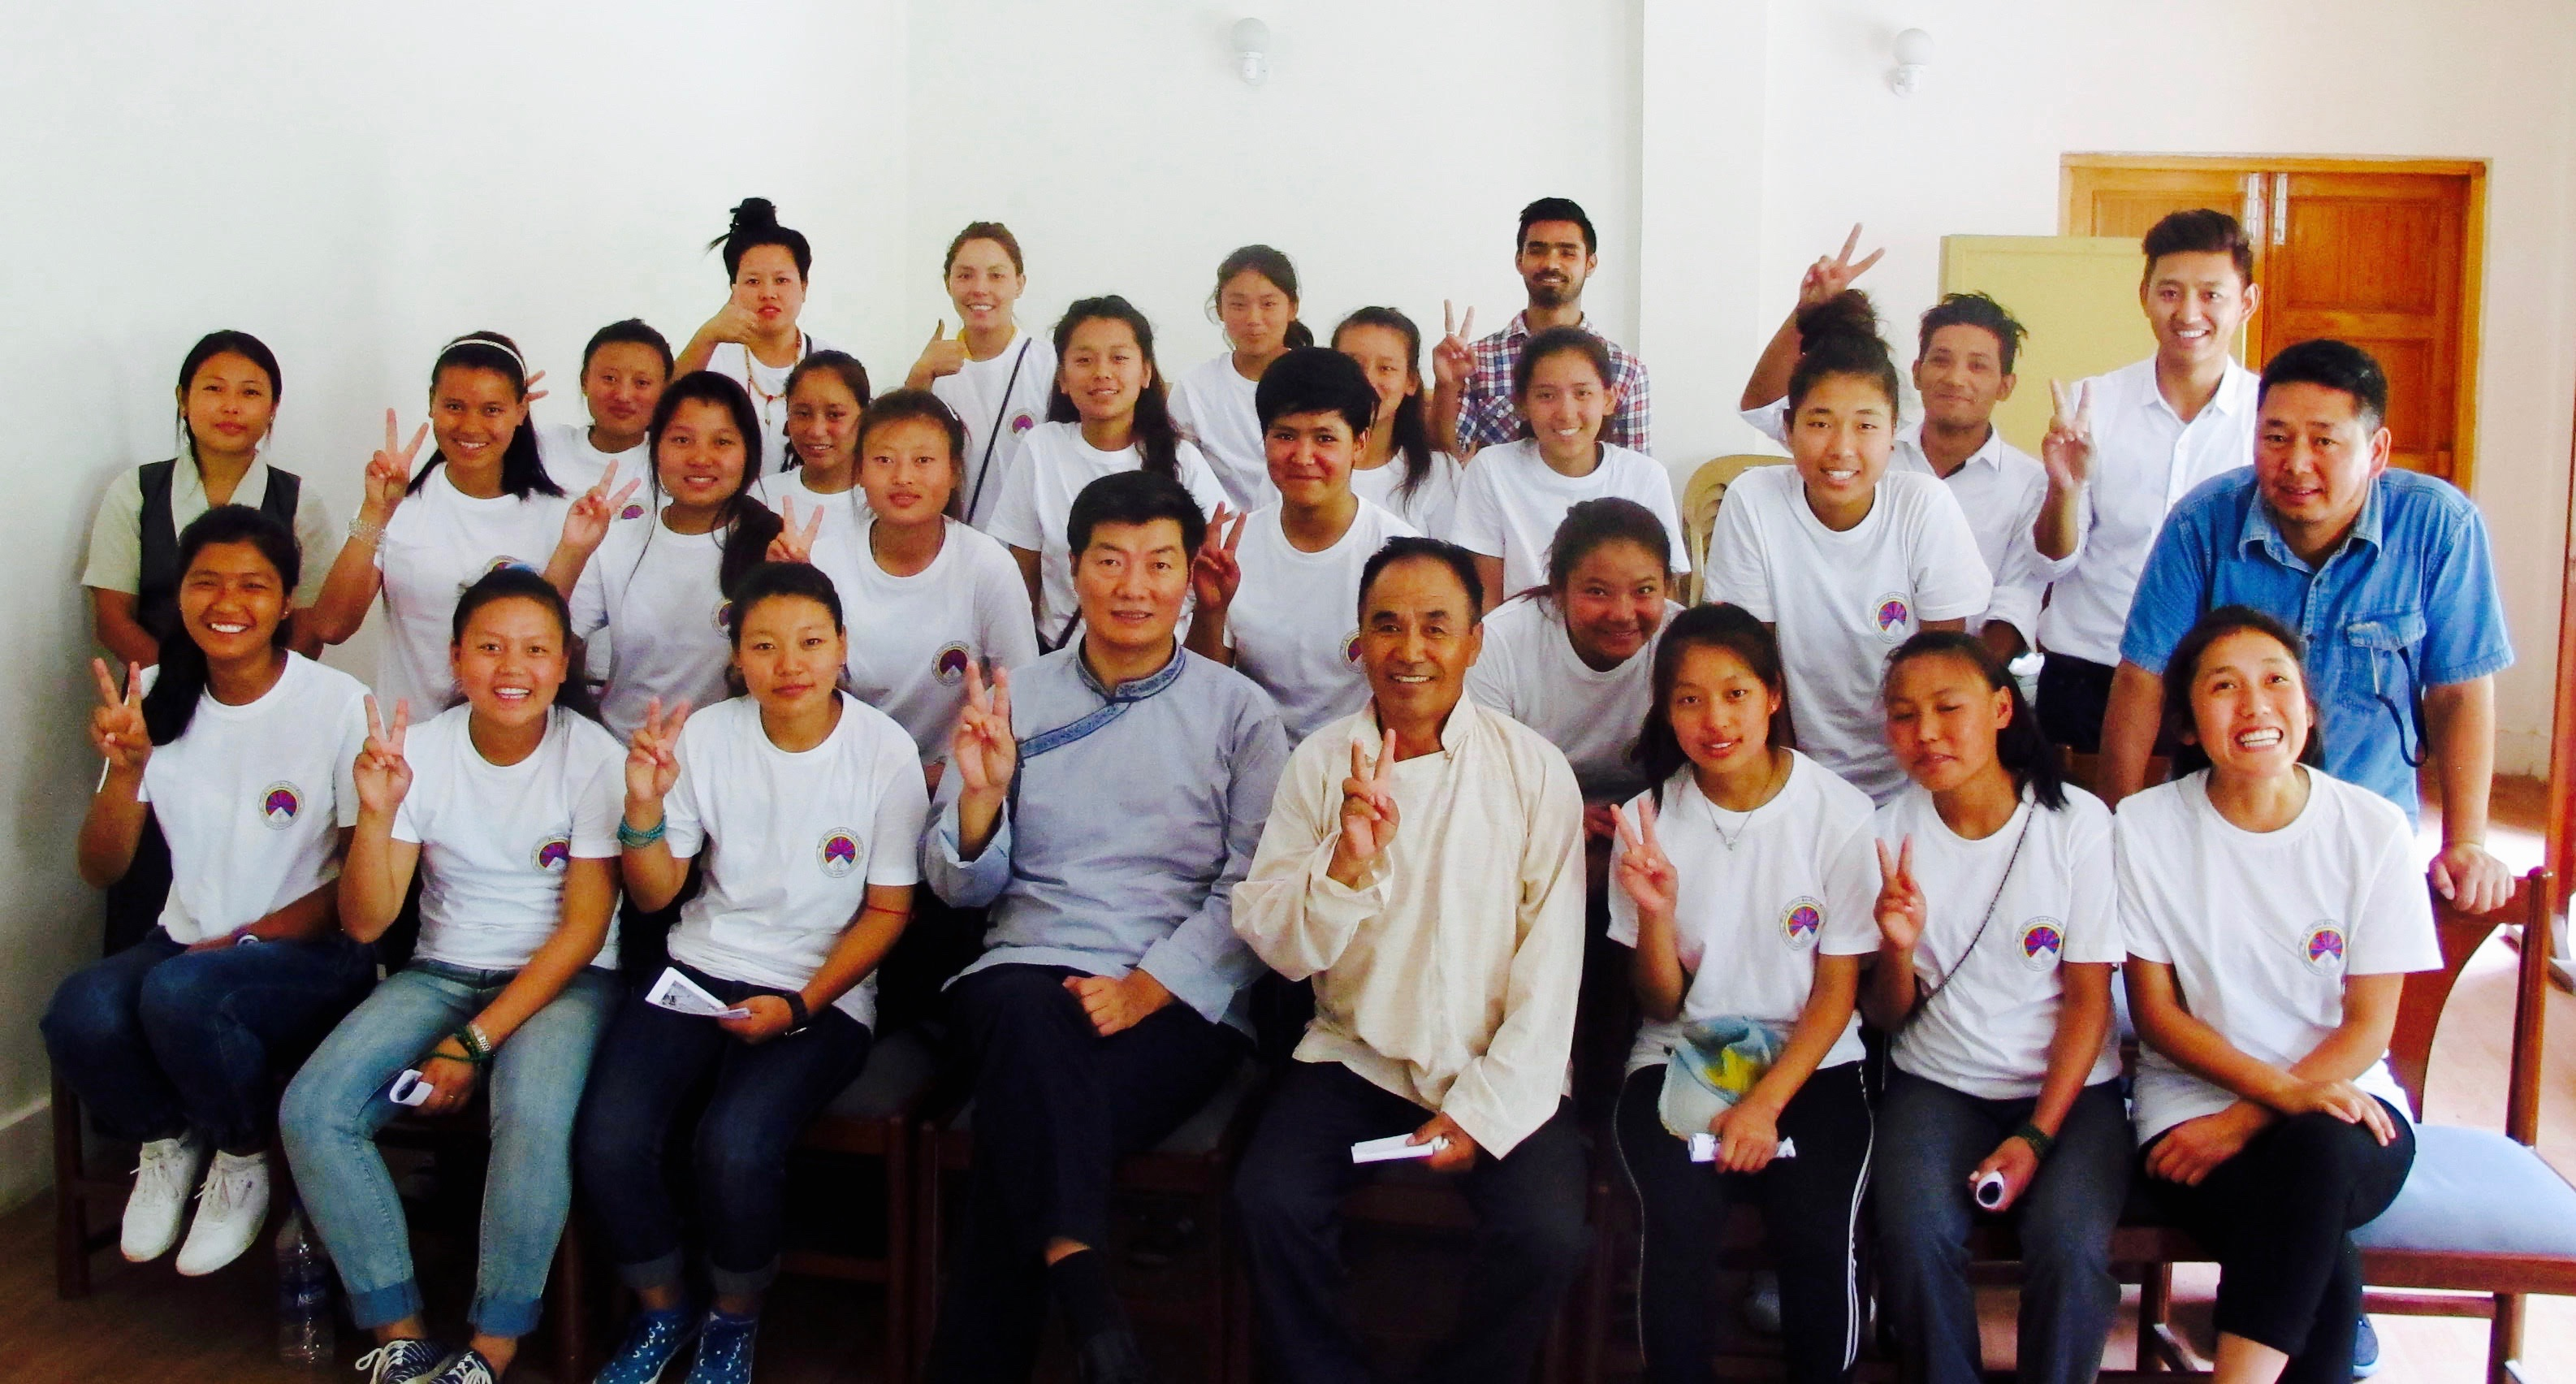 Sikyong Dr. Lobsang Sangay with Women's Team managed by TNSA